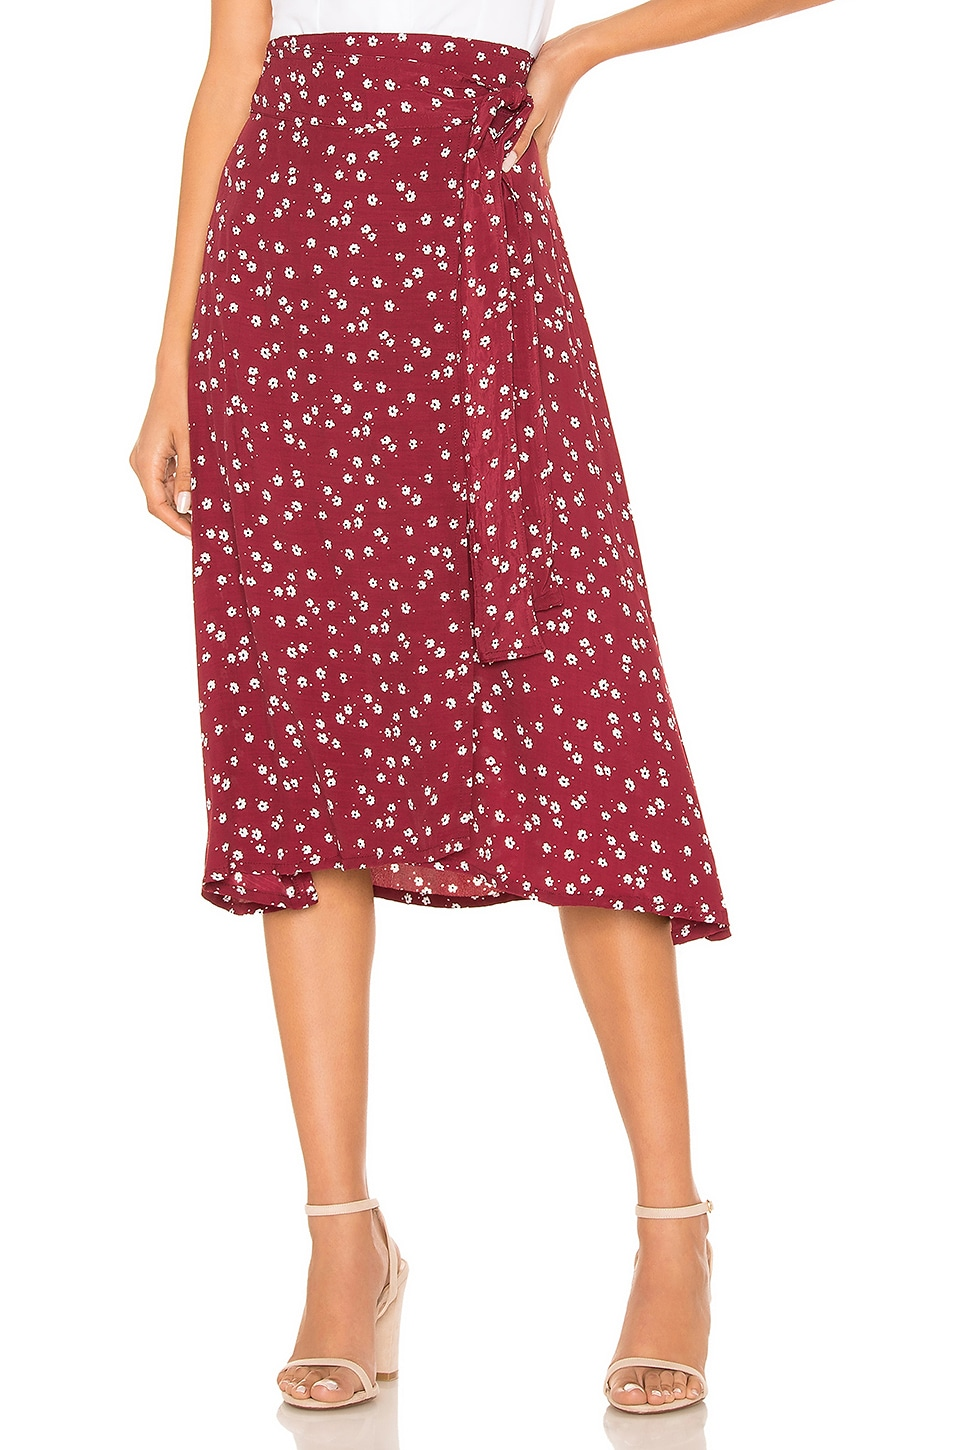 FAITHFULL THE BRAND Valencia Wrap Skirt in Berry Betina Floral